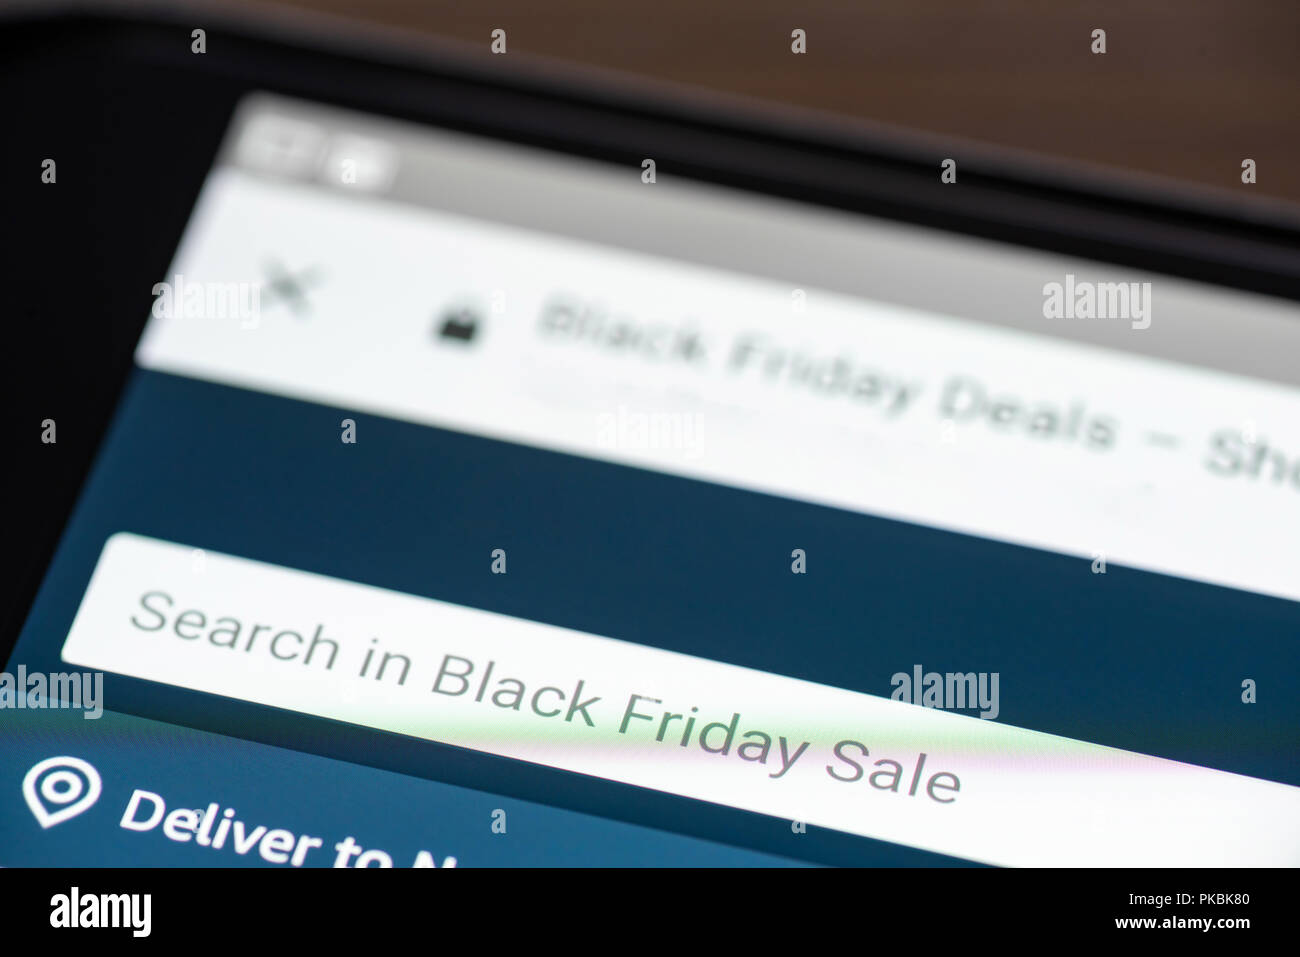 Black Friday Sale text in search box on shopping app on smartphone screen closeup. - Stock Image